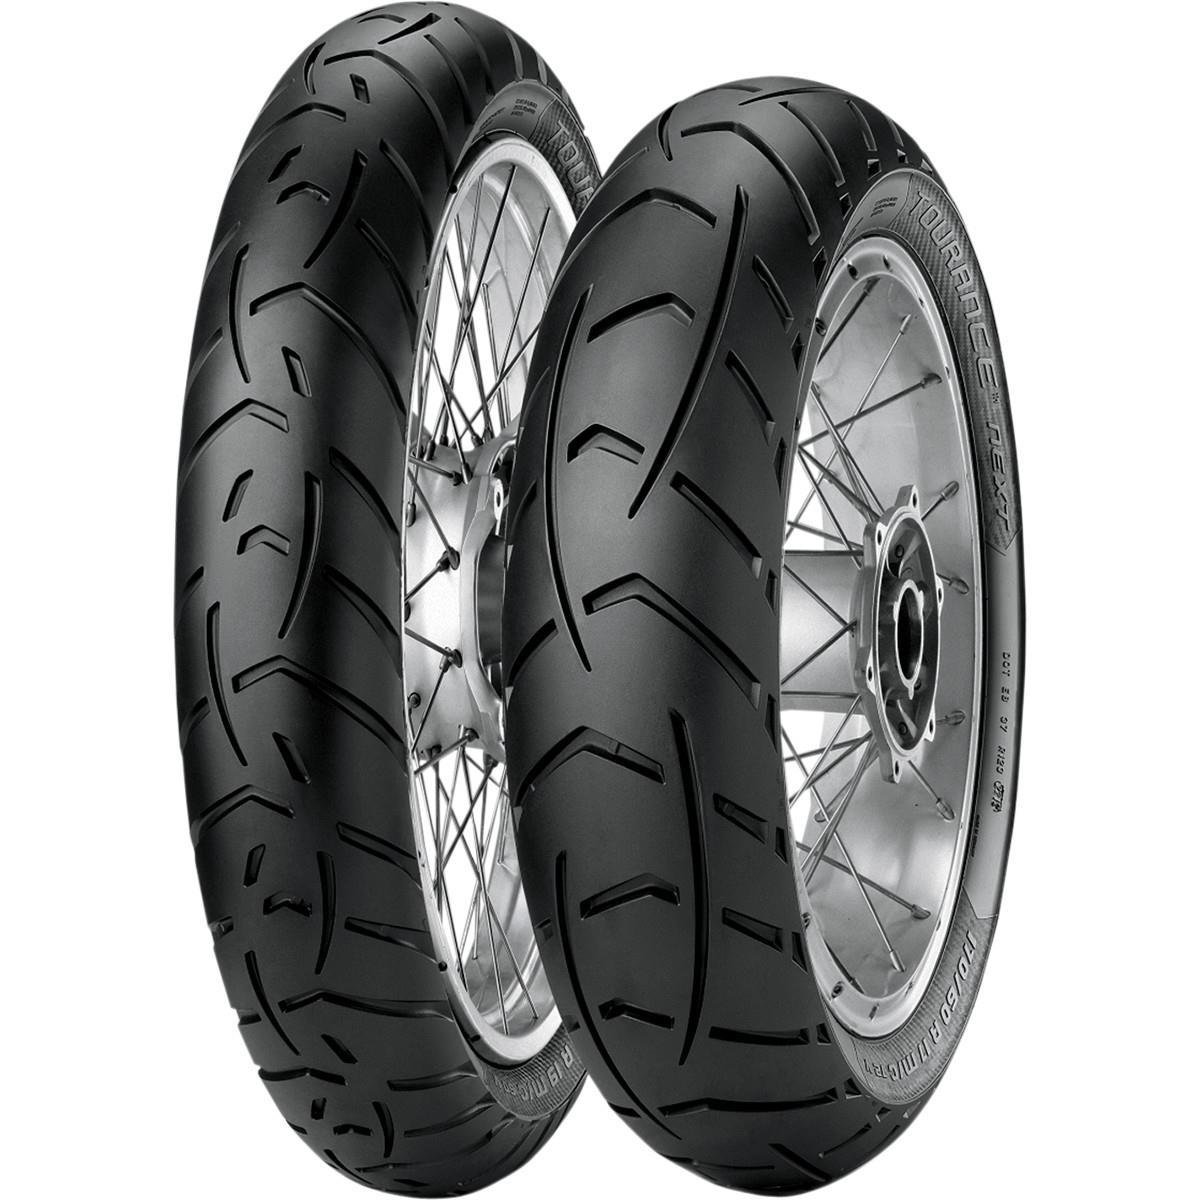 Metzeler Tourance Next Rear Tire - 170/60ZR-17, Position: Rear, Rim Size: 17, Tire Application: Touring, Tire Size: 170/60-17, Tire Type: Dual Sport, Load Rating: 72, Speed Rating: W, Tire Construction: Radial 2439400